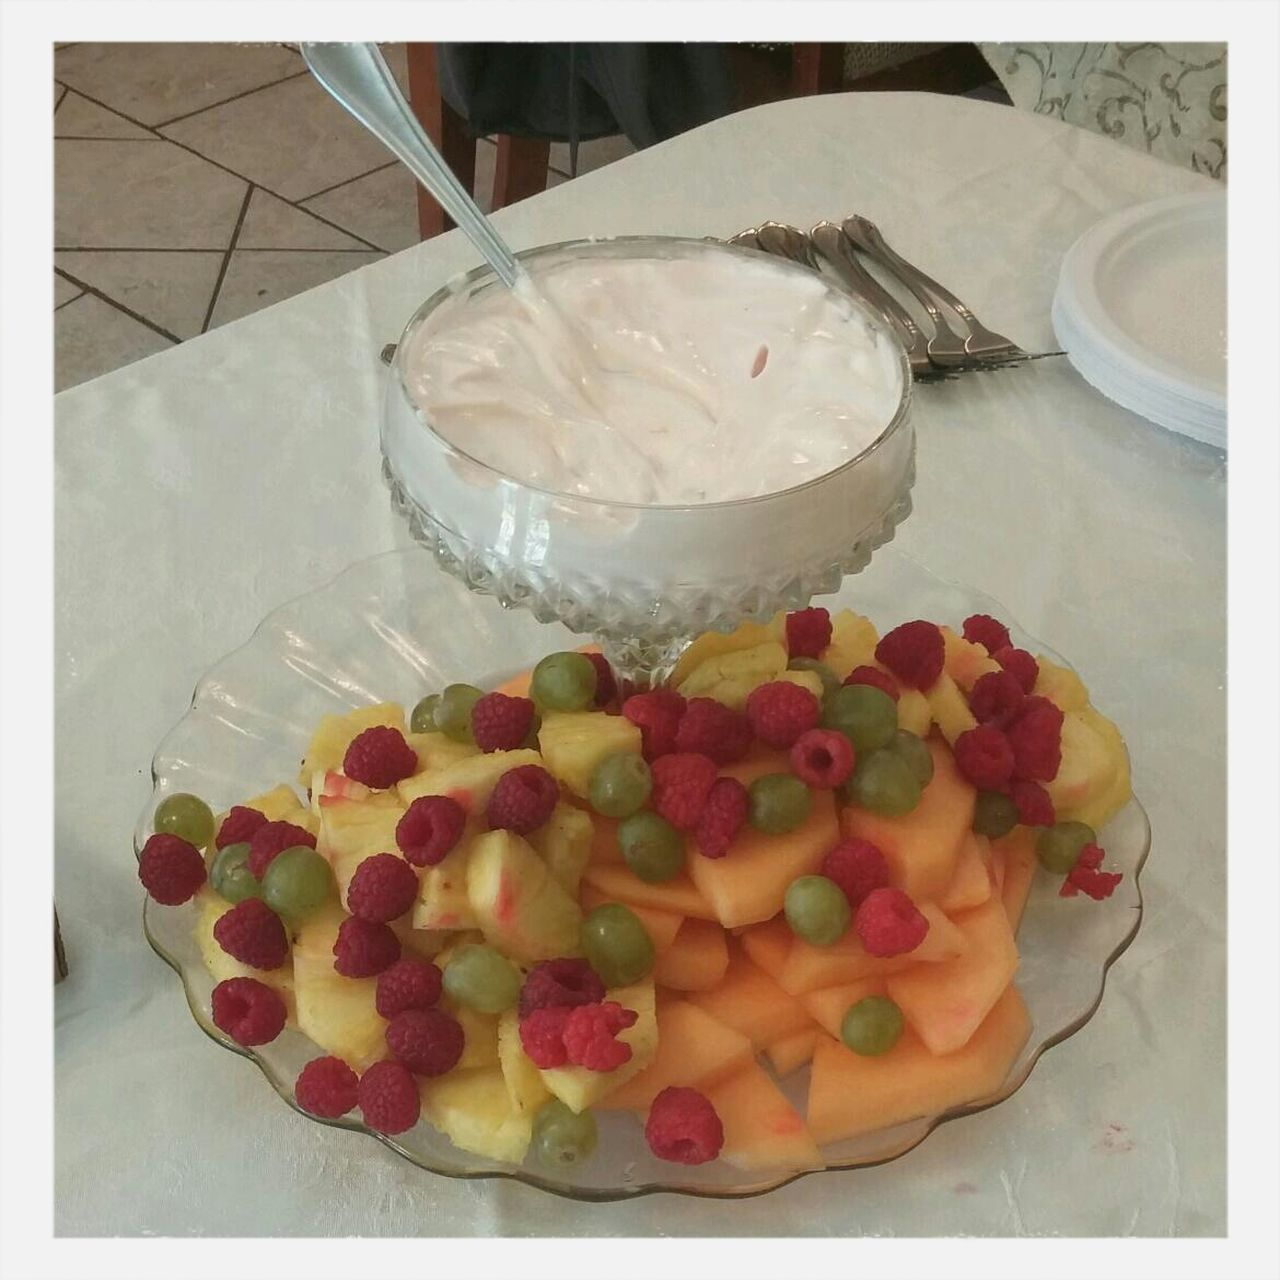 Close-Up Of Fruit Salad In Plate